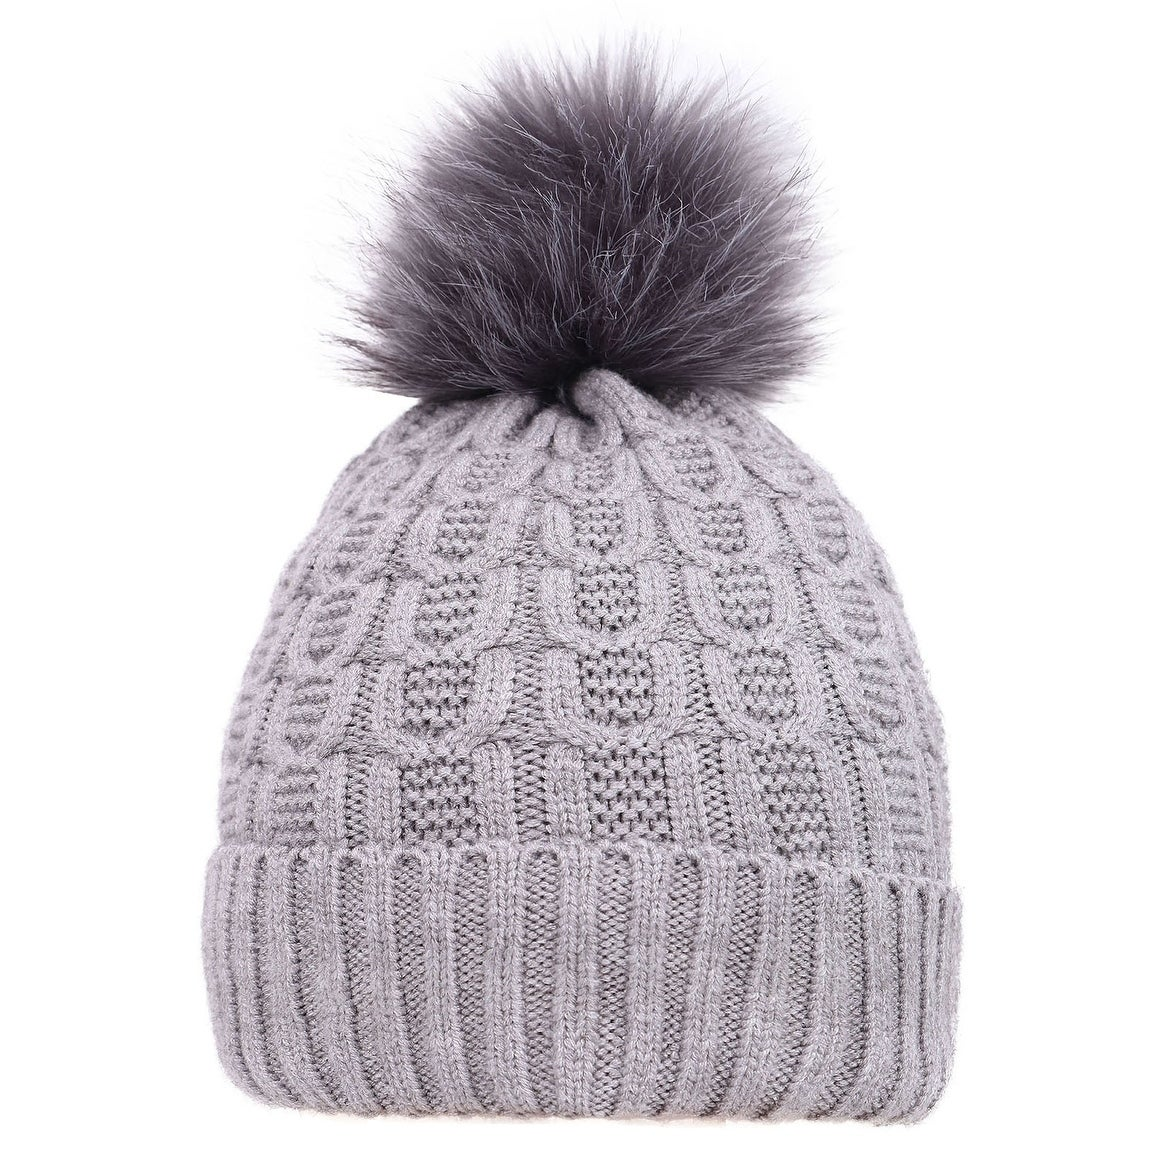 Shop Arctic Paw Sherpa Lined Knit Beanie with Faux Fur Pompom - On ... c609b58968b